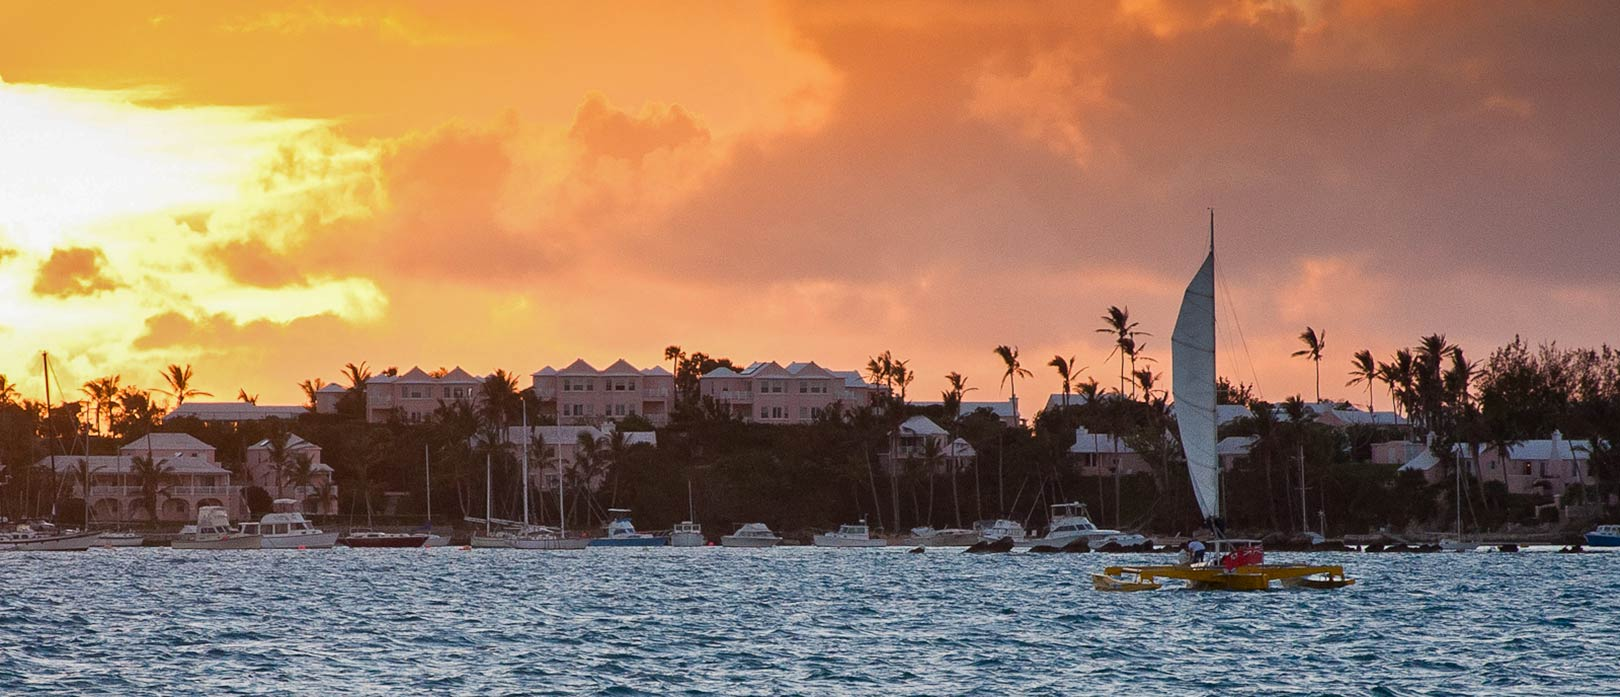 View of Bermuda from the sea at sunset